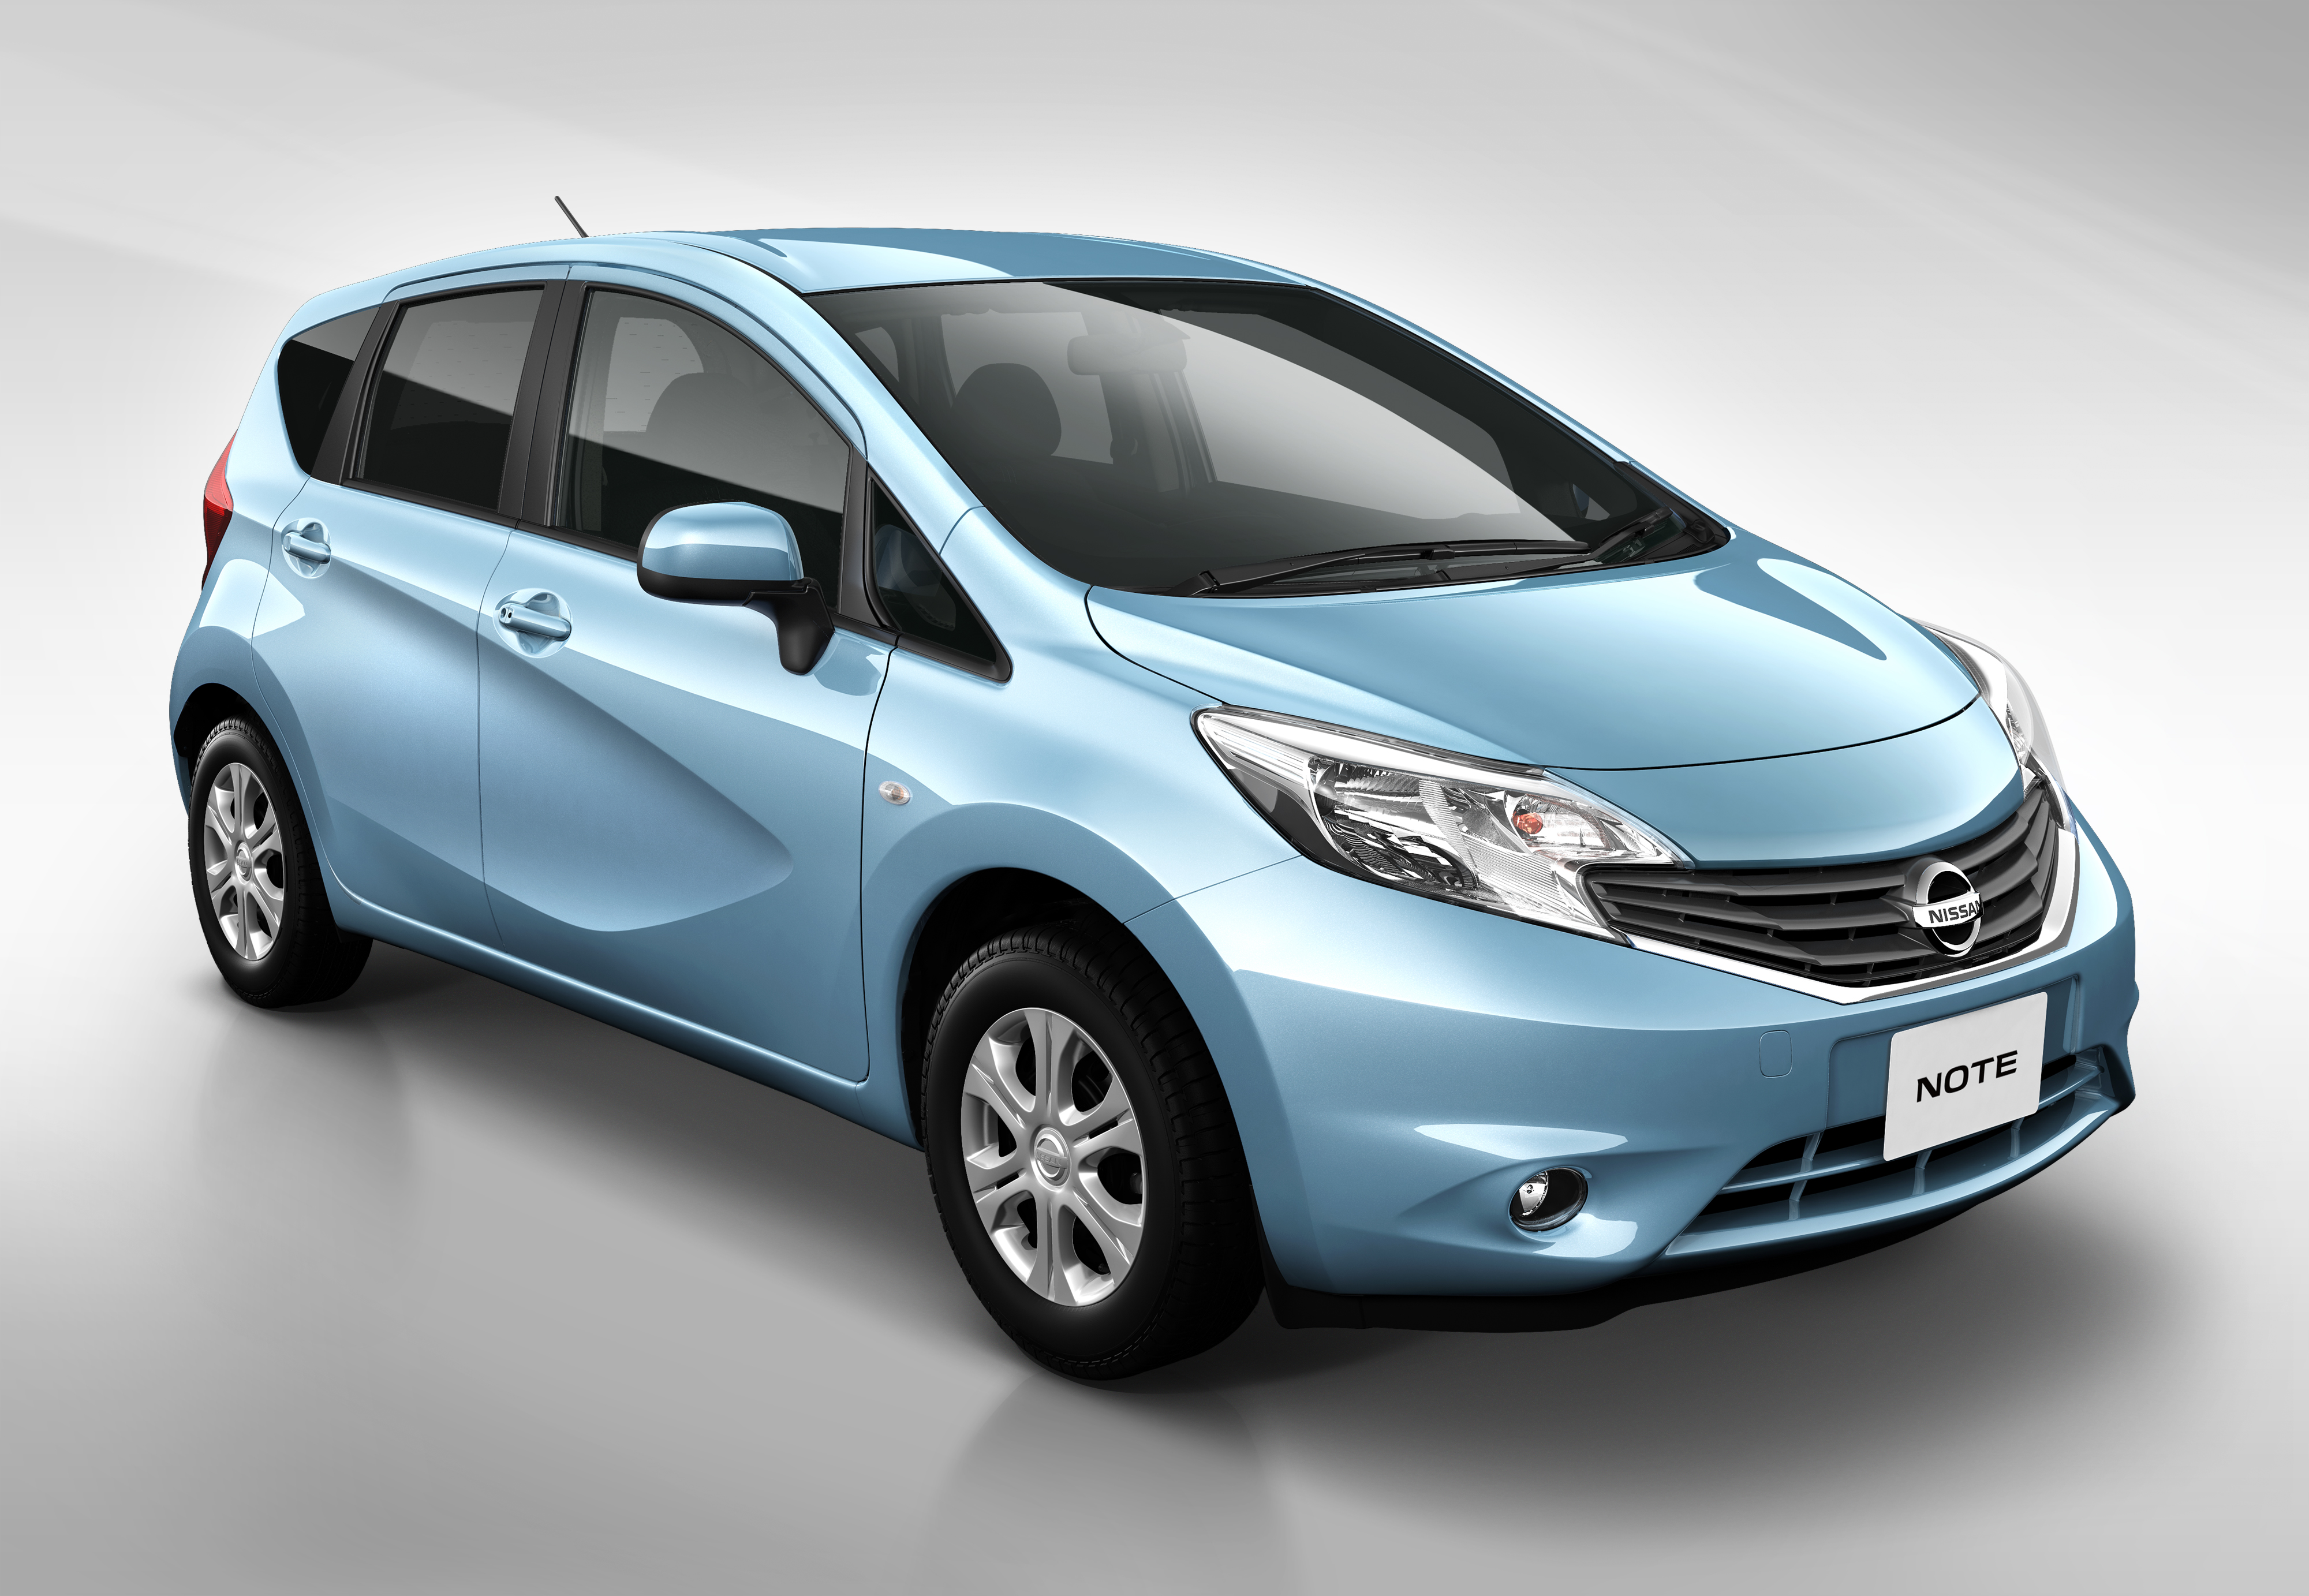 2012 Nissan Note #7